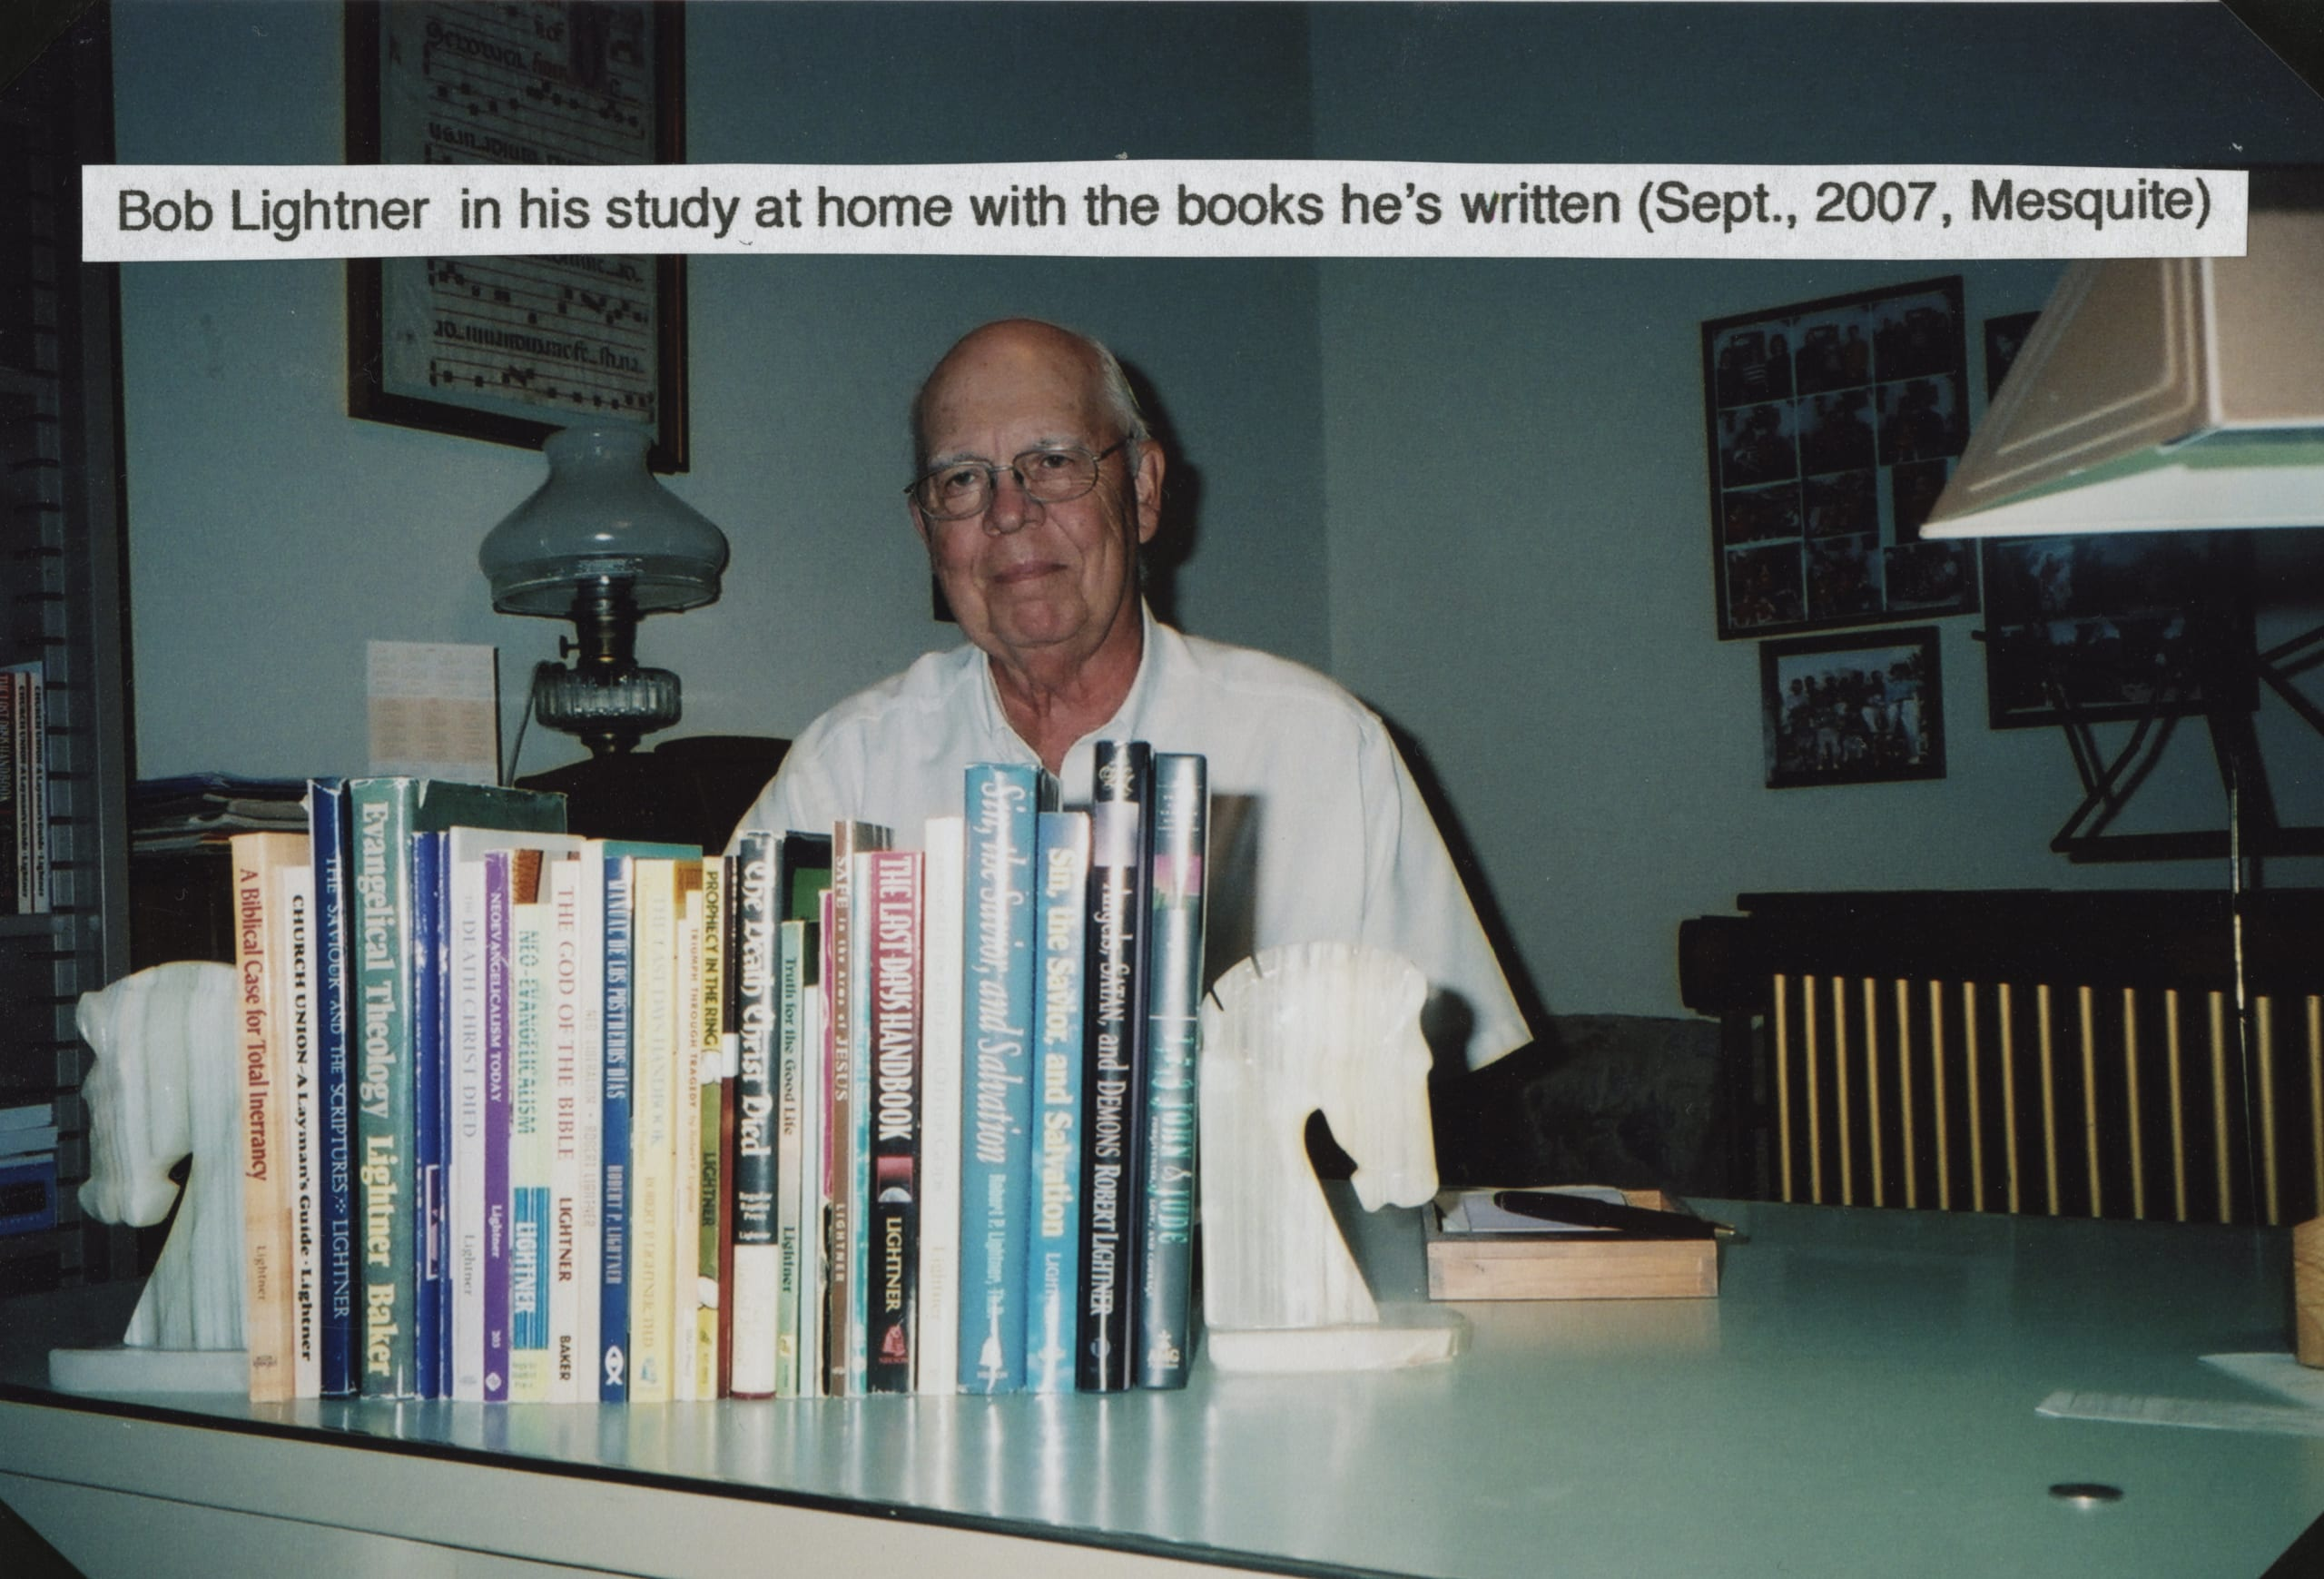 Dr. Lightner seated at a desk with copies of books he has written